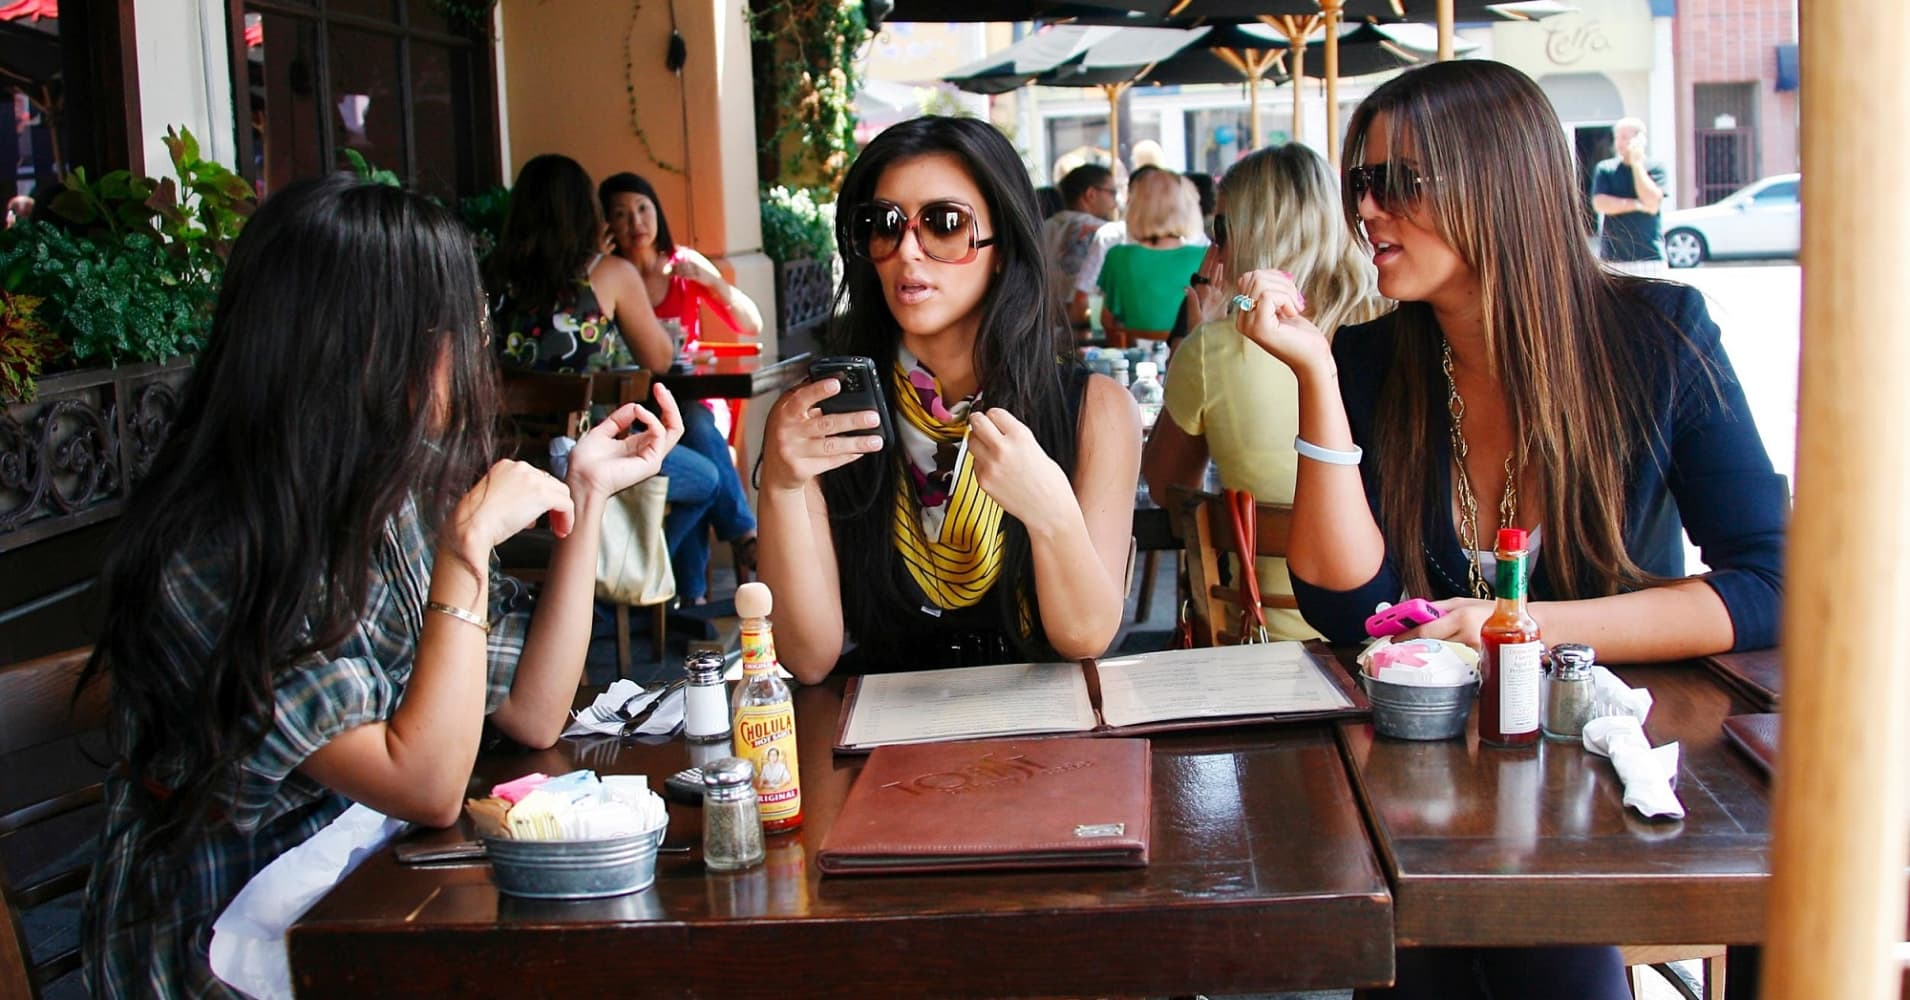 The Kardashian sisters Kim, Khloe, and Kourtney out for lunch in 2008.